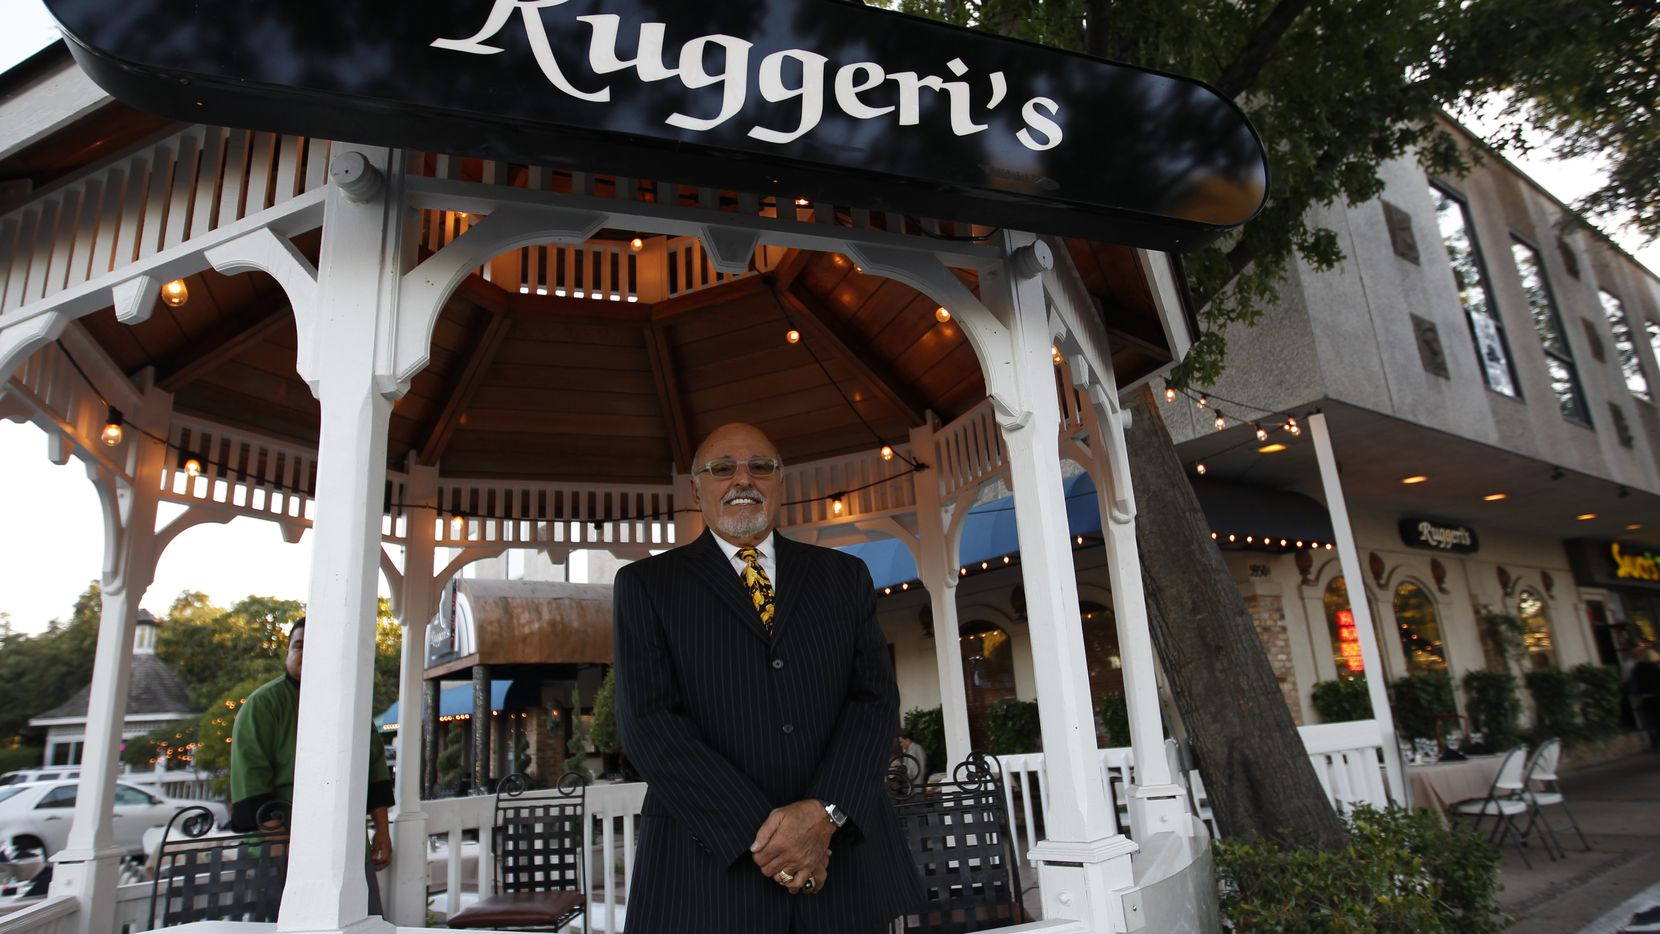 Owner Tom Ruggeri in front of Ruggeri's restaurant in Dallas in October 2014. He opened the first Ruggeri's restaurant on Routh Street in 1985.